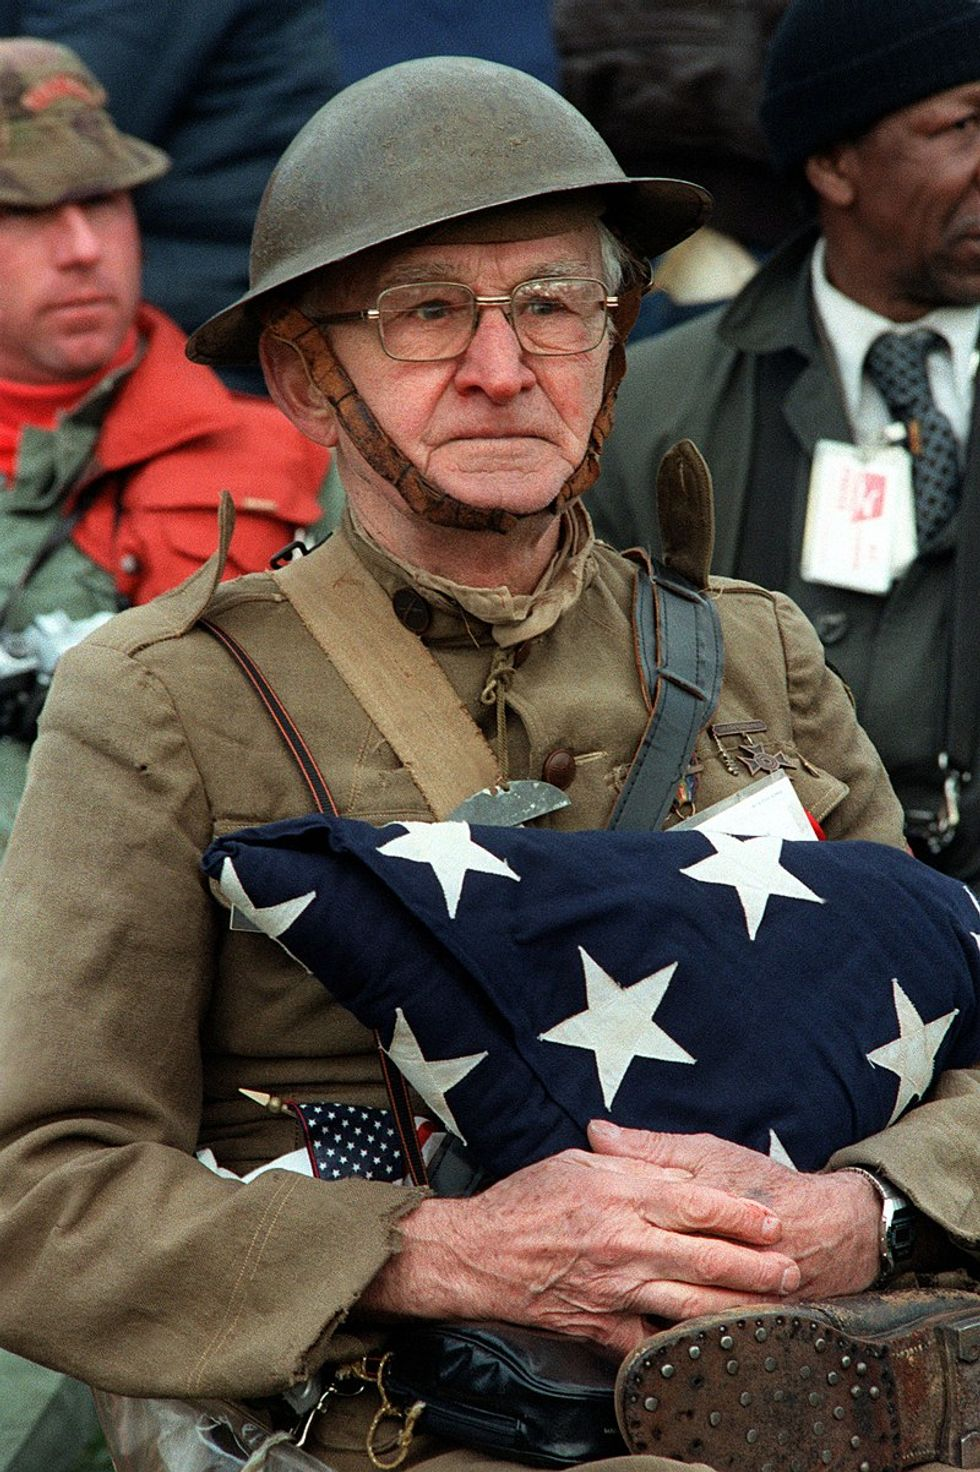 Republicans squash bill to pay for Vietnam vets' health care citing deficit woes